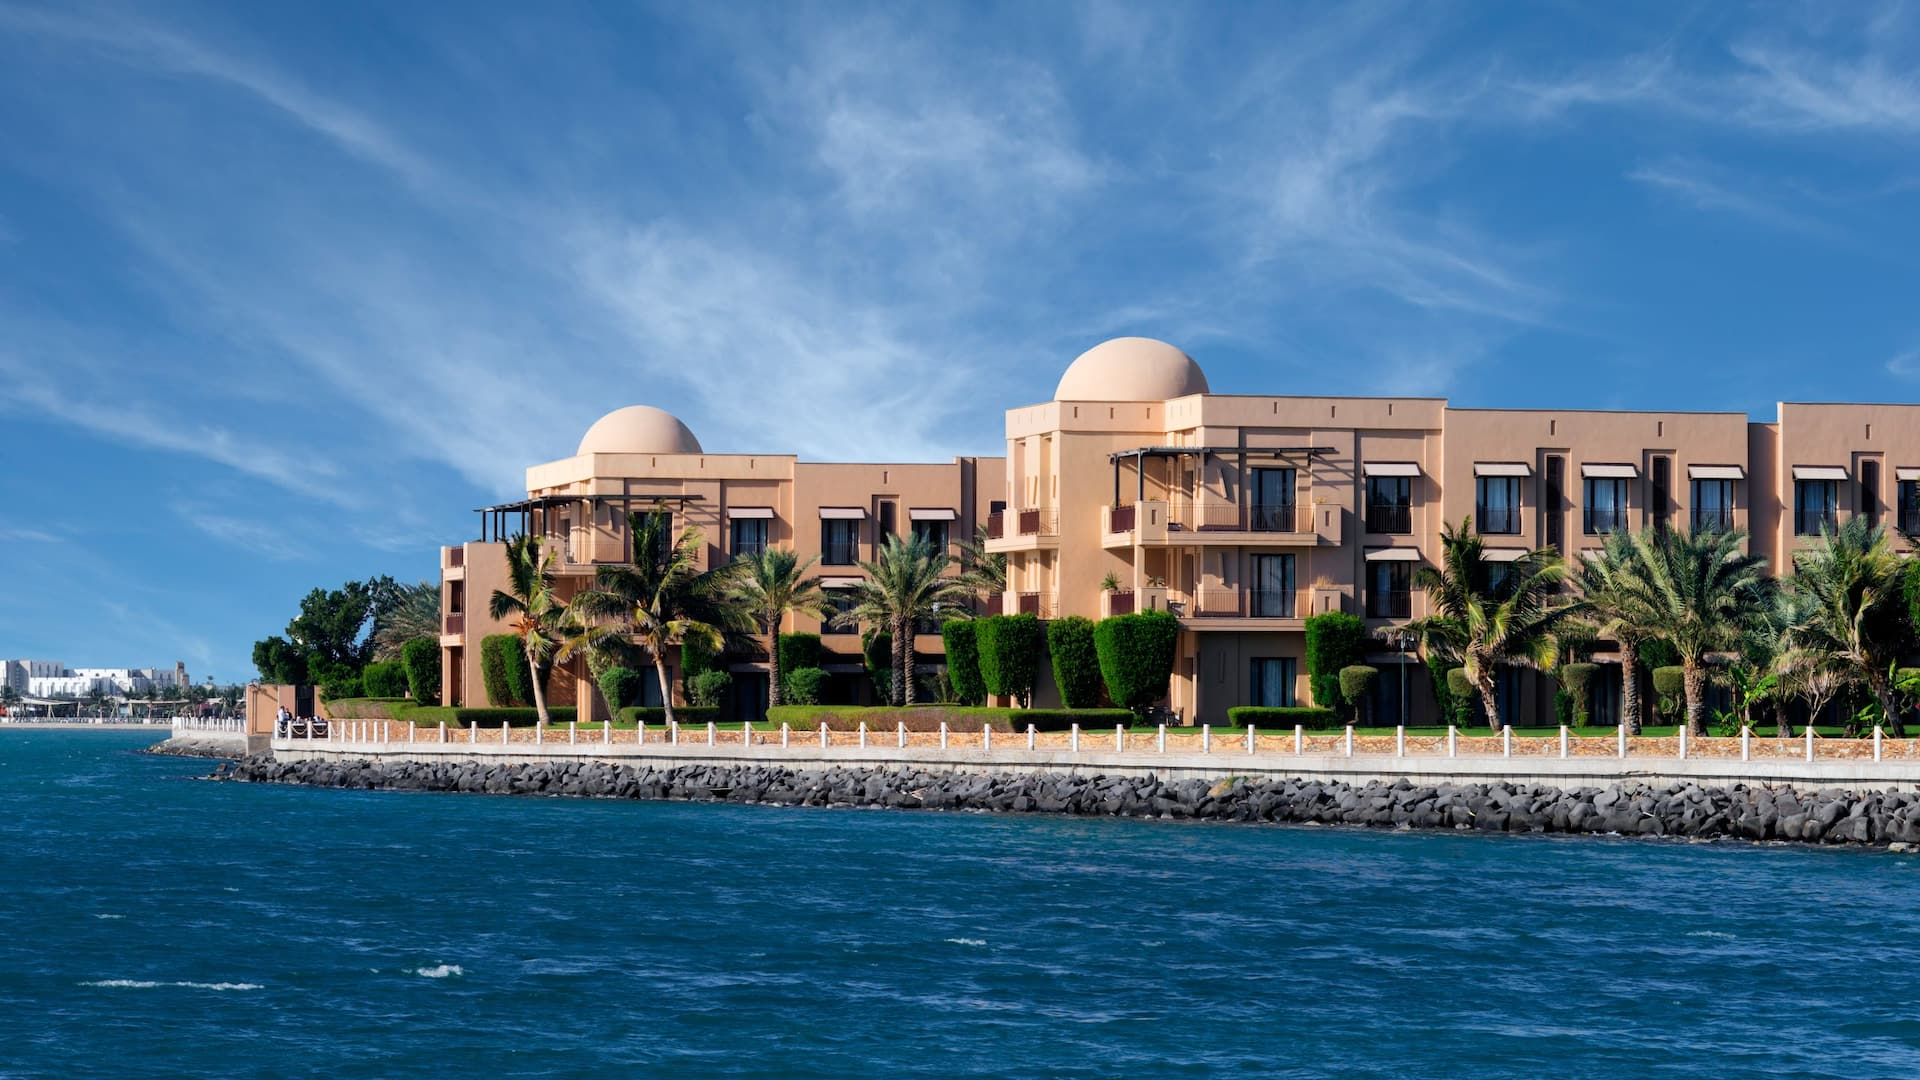 Park Hyatt Jeddah exterior from water